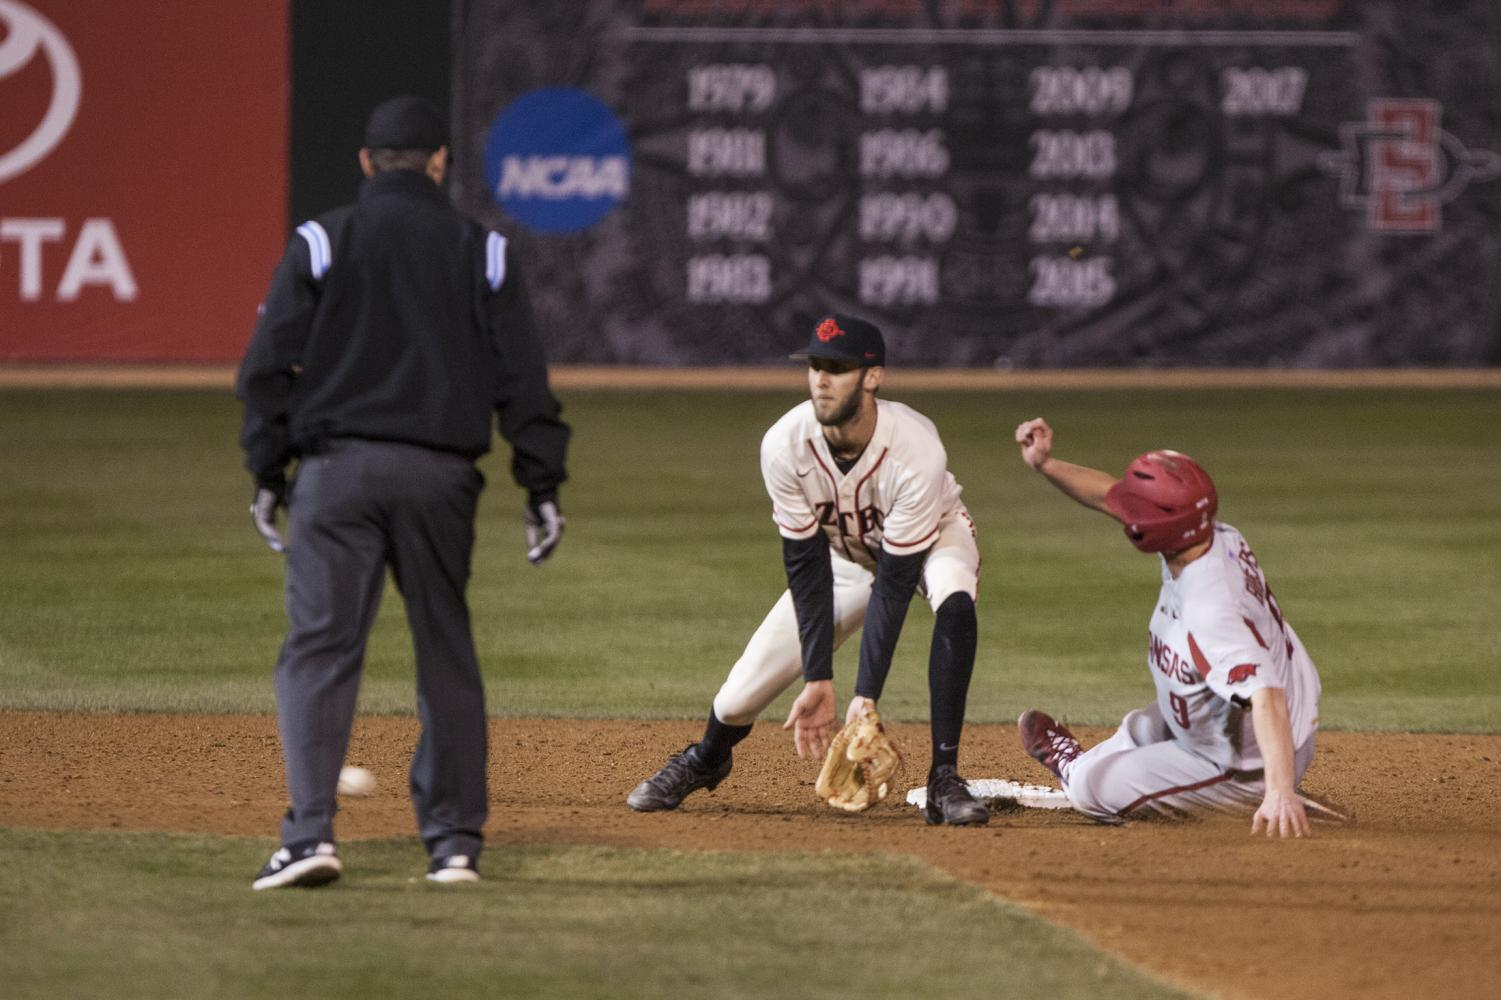 Arkansas junior shortstop Jax Biggers beats the throw to second base during the Aztecs 5-2 loss to the No. 4 Razorbacks on Feb. 24 at Tony Gwynn Stadium.